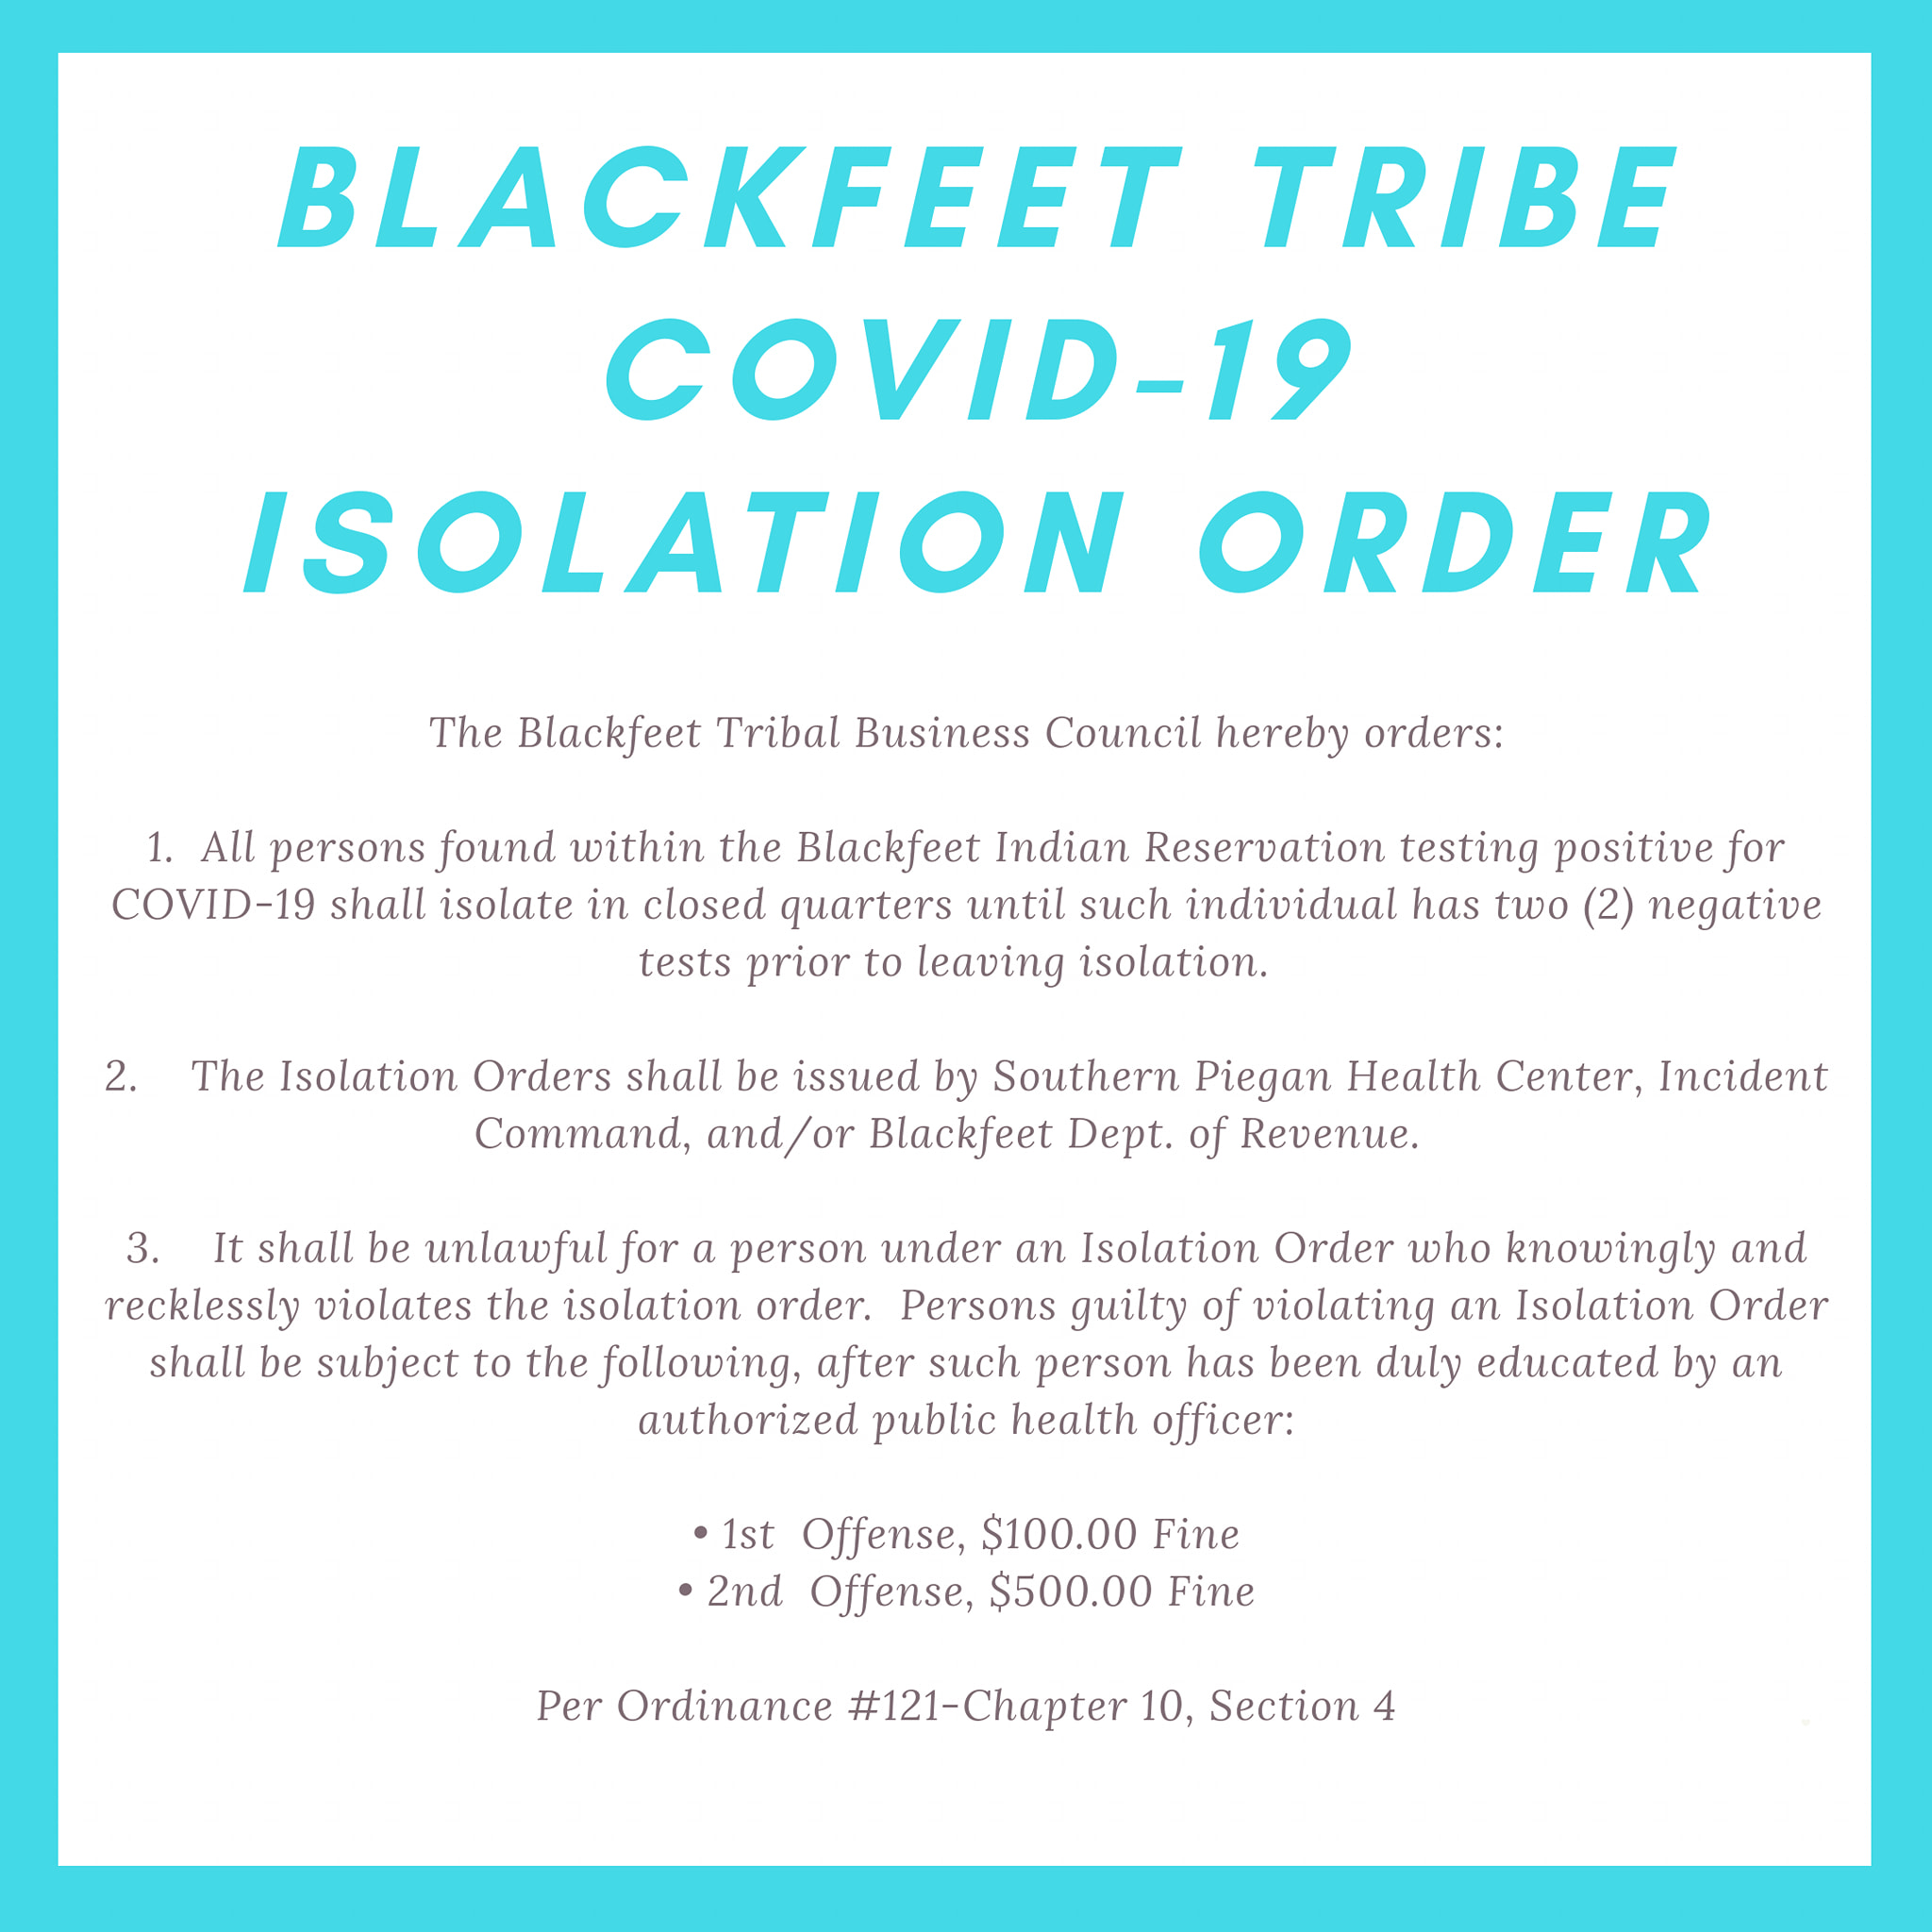 blackfeet nation isolation order